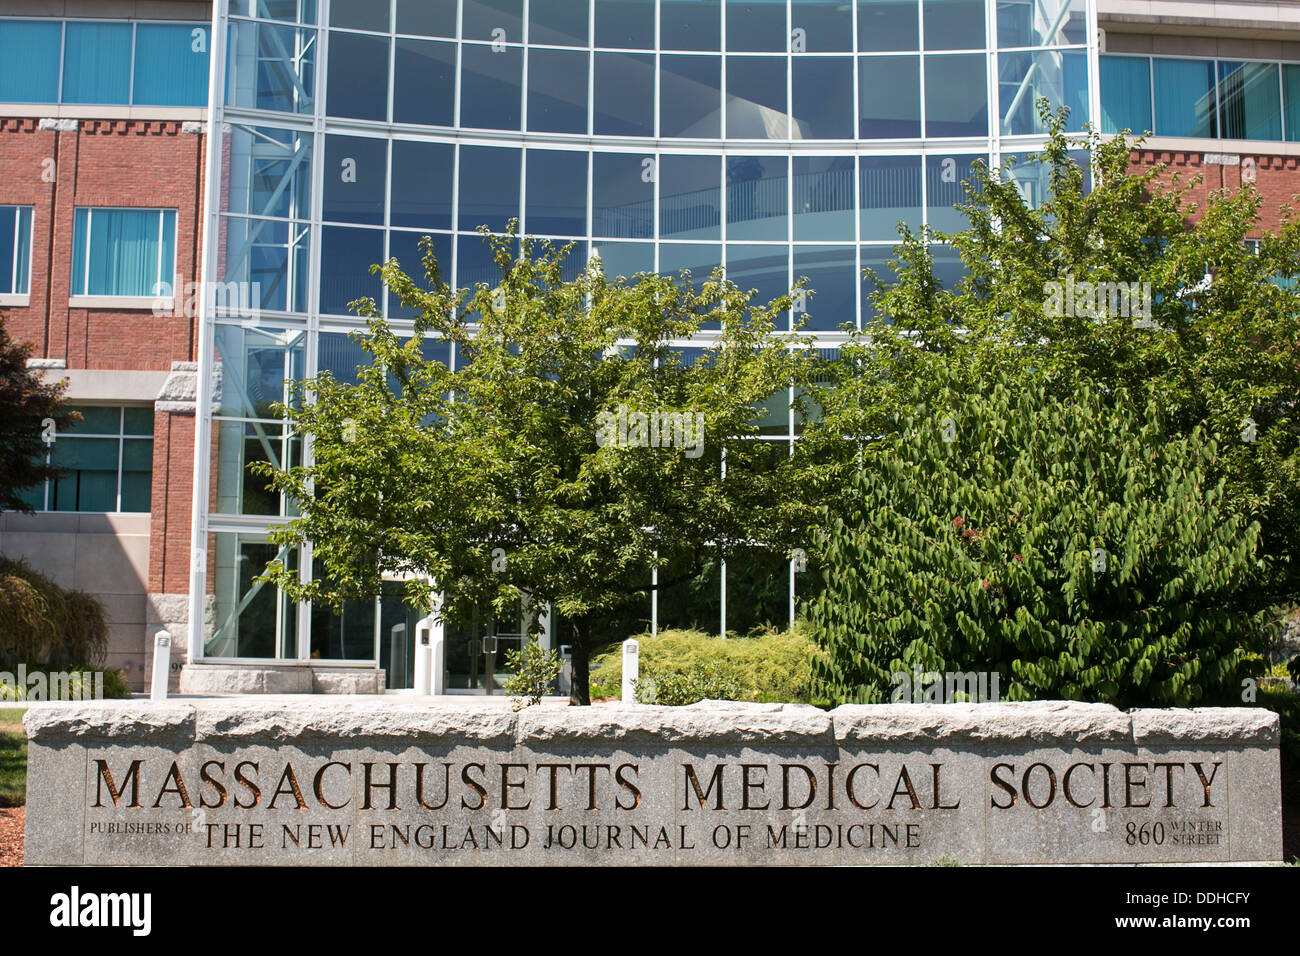 La sede de la Massachusetts Medical Society, el editor de la revista New England Journal of Medicine. Imagen De Stock